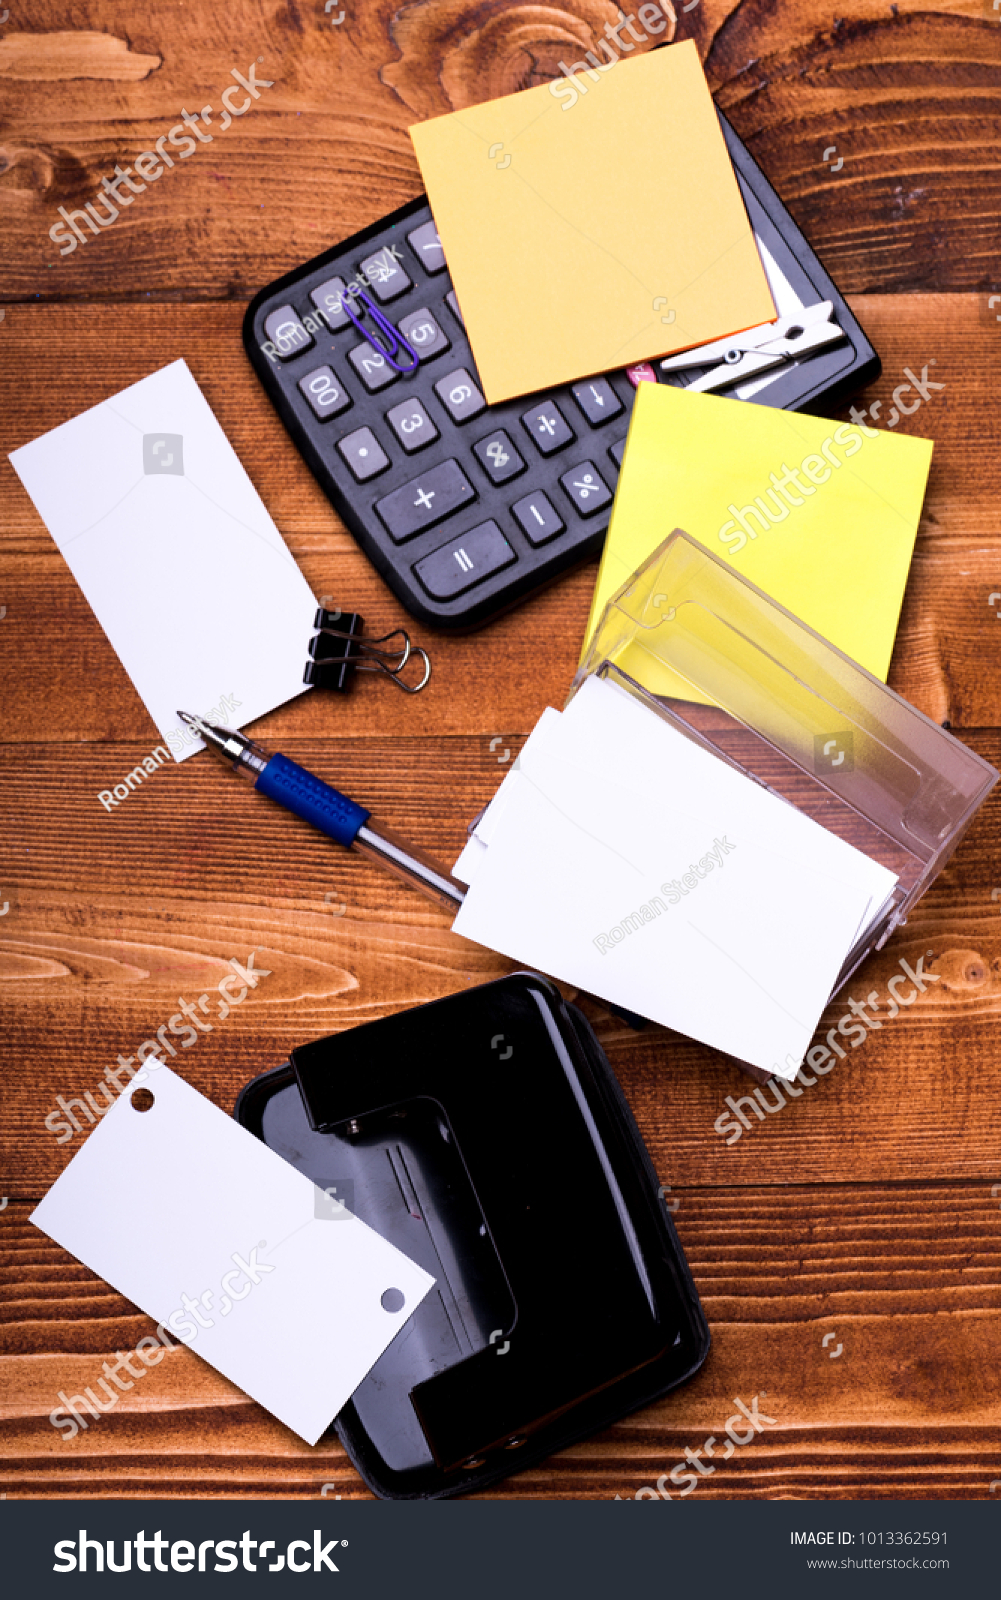 Business Idea Concept Business Card Copy Stock Photo (Safe to Use ...